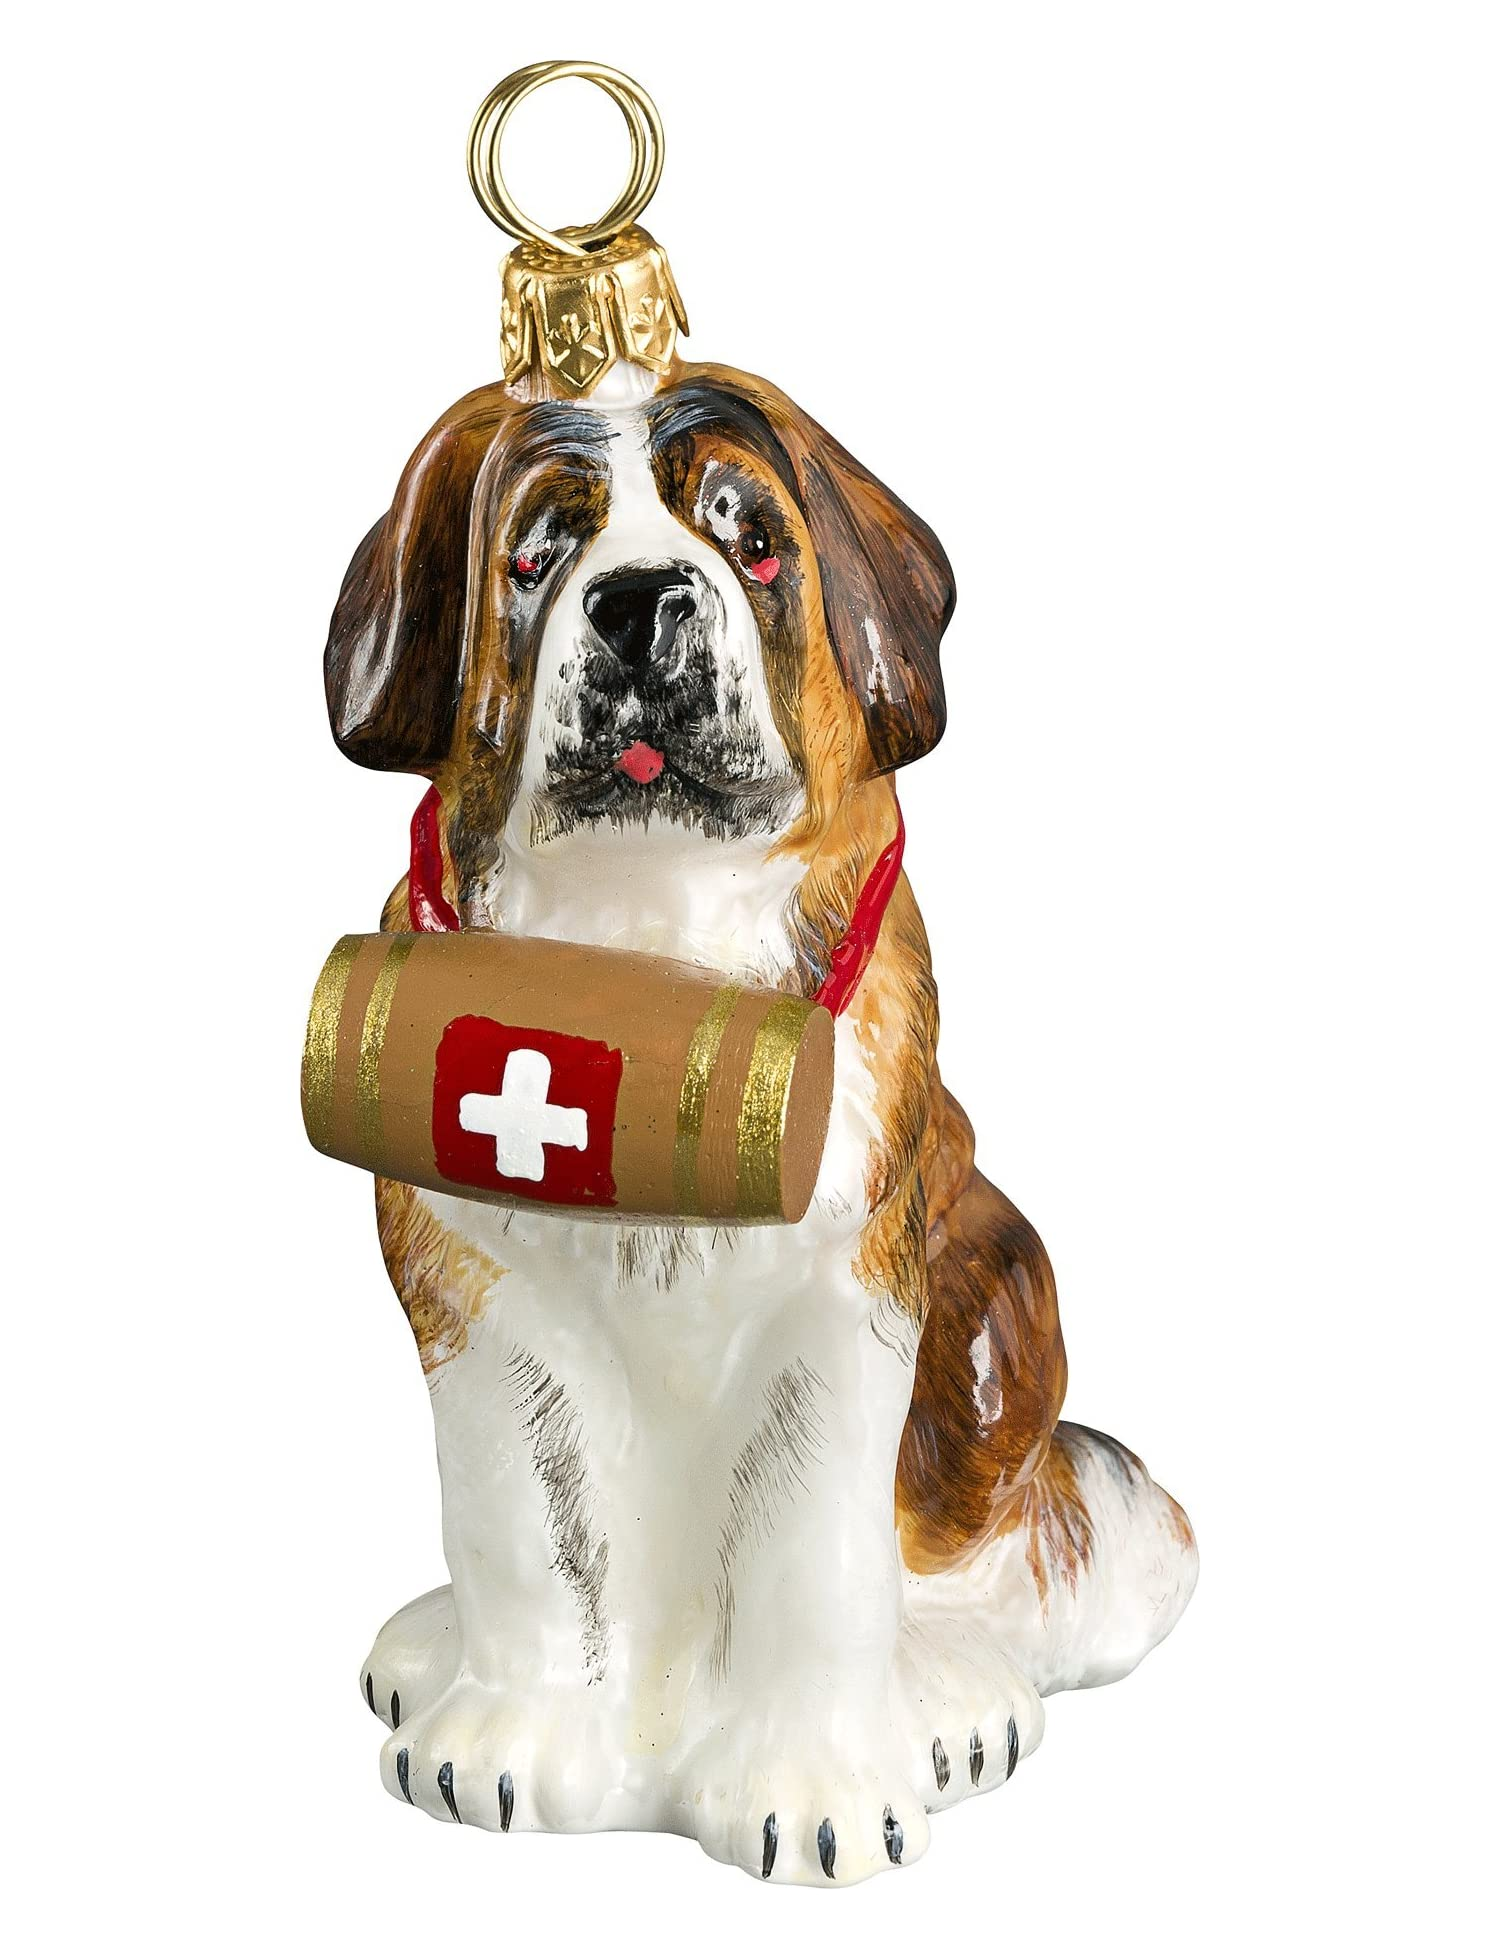 The Pet Set Blown Glass European Dog Ornament By Joy To The World Collectibles - Saint Bernard With Barrel